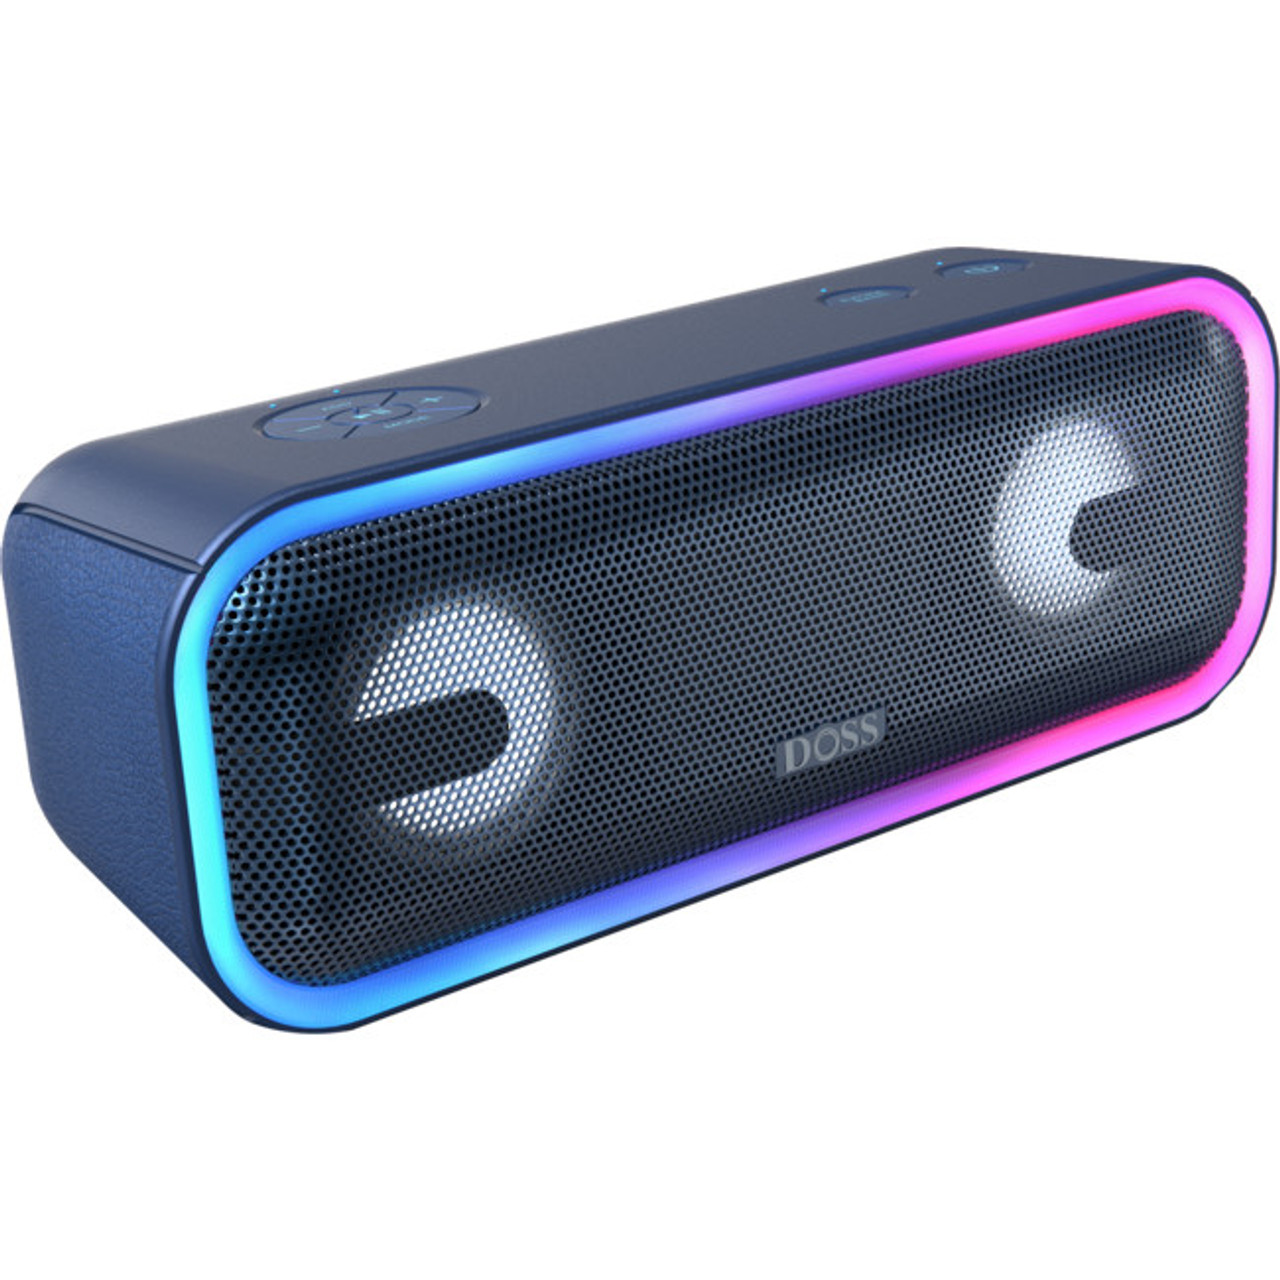 Doss WB20BLK/WB20BLU Soundbox PRO+ Portable Bluetooth Speaker - Black/Blue